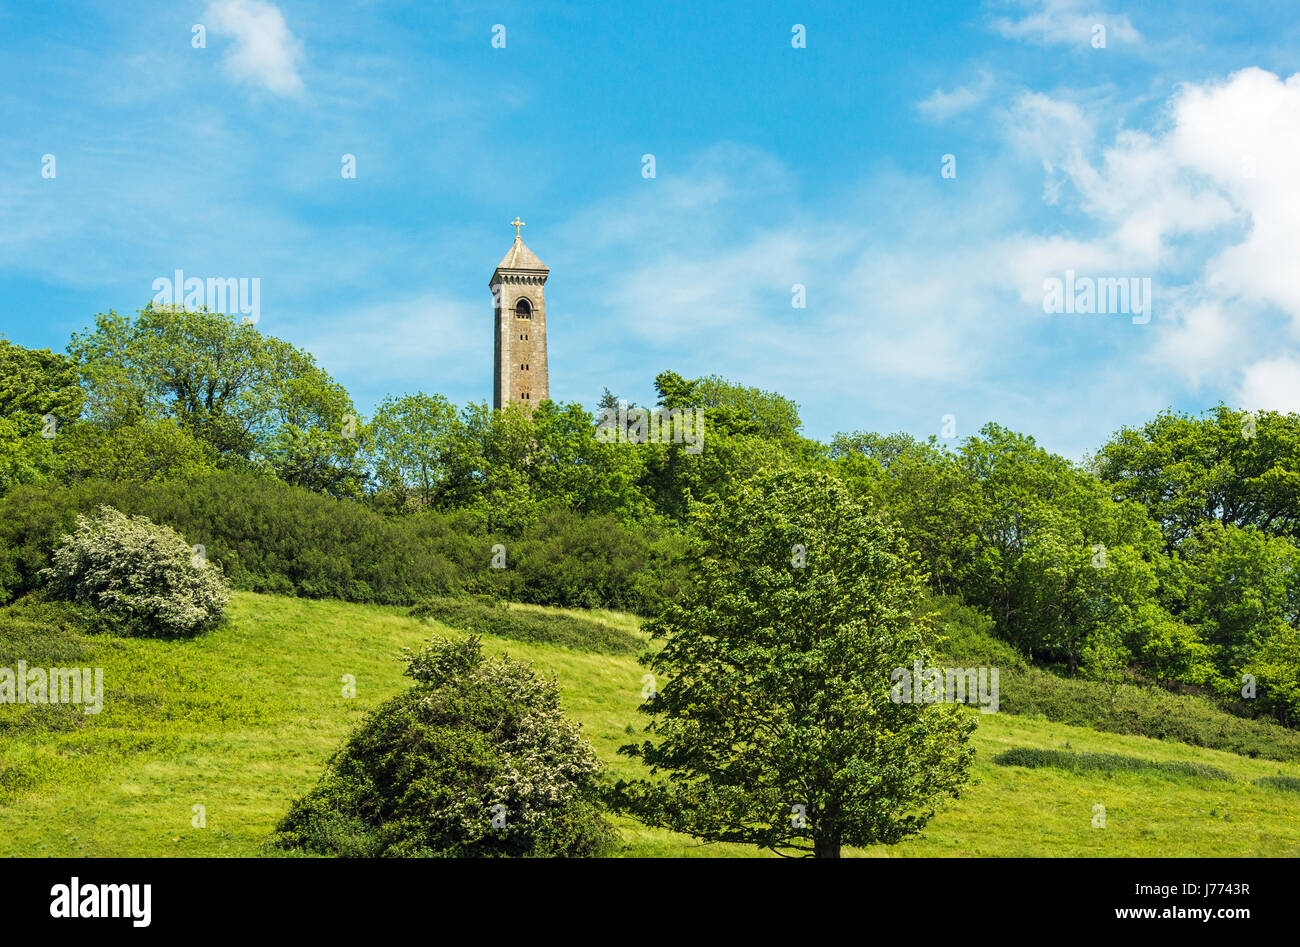 The Tyndale Monument, in memory of William Tyndale, atop a hill above North Nibley in Gloucestershire - Stock Image